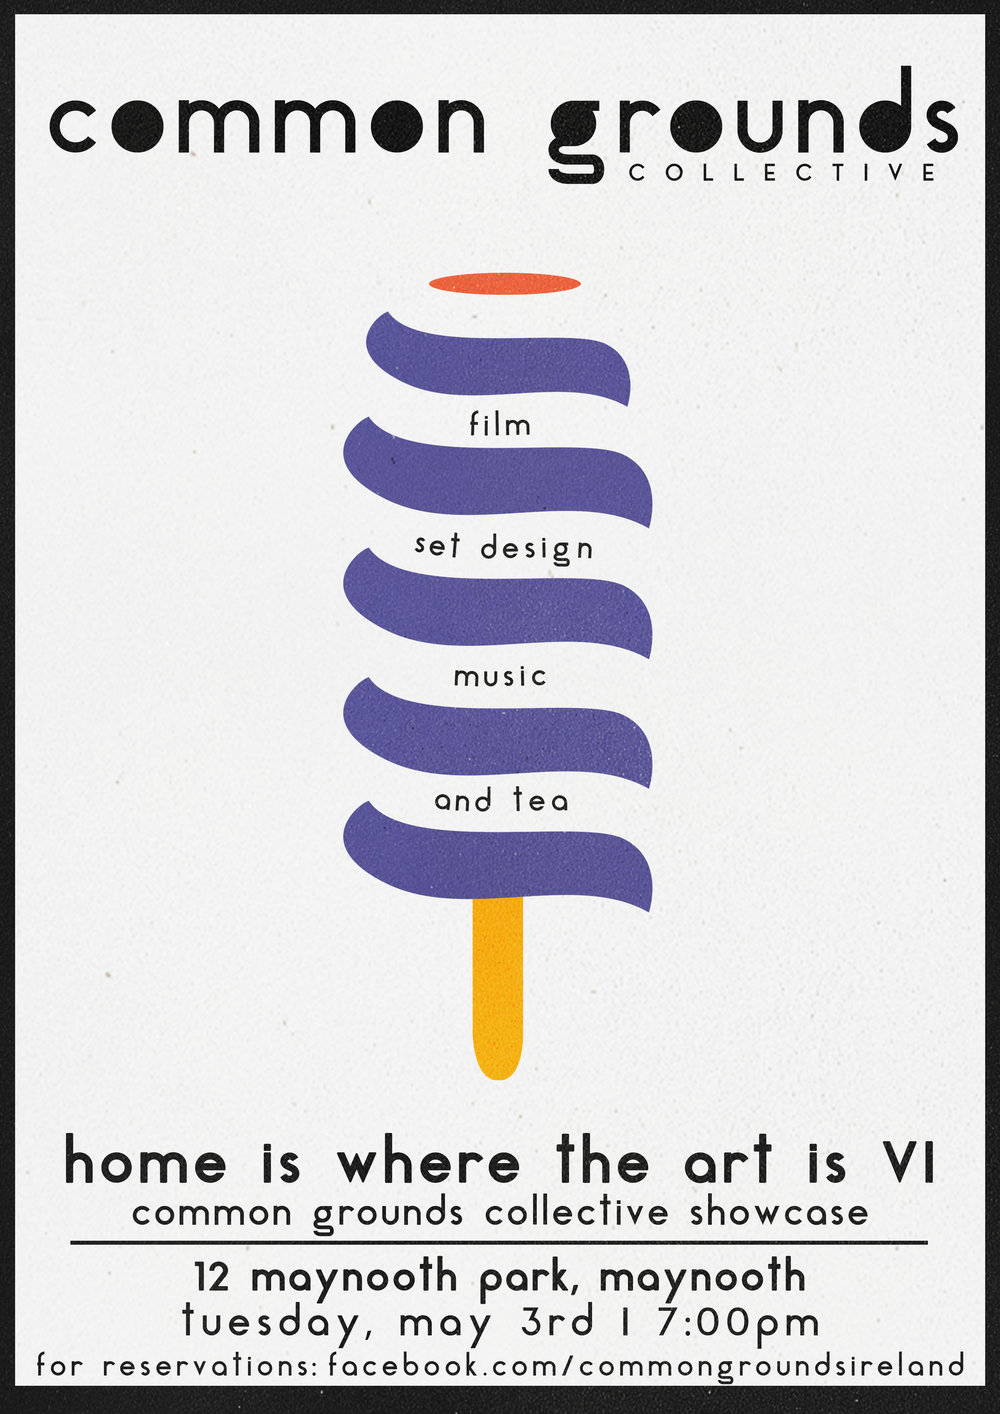 Home is Where the Art is VI Lauren Varian